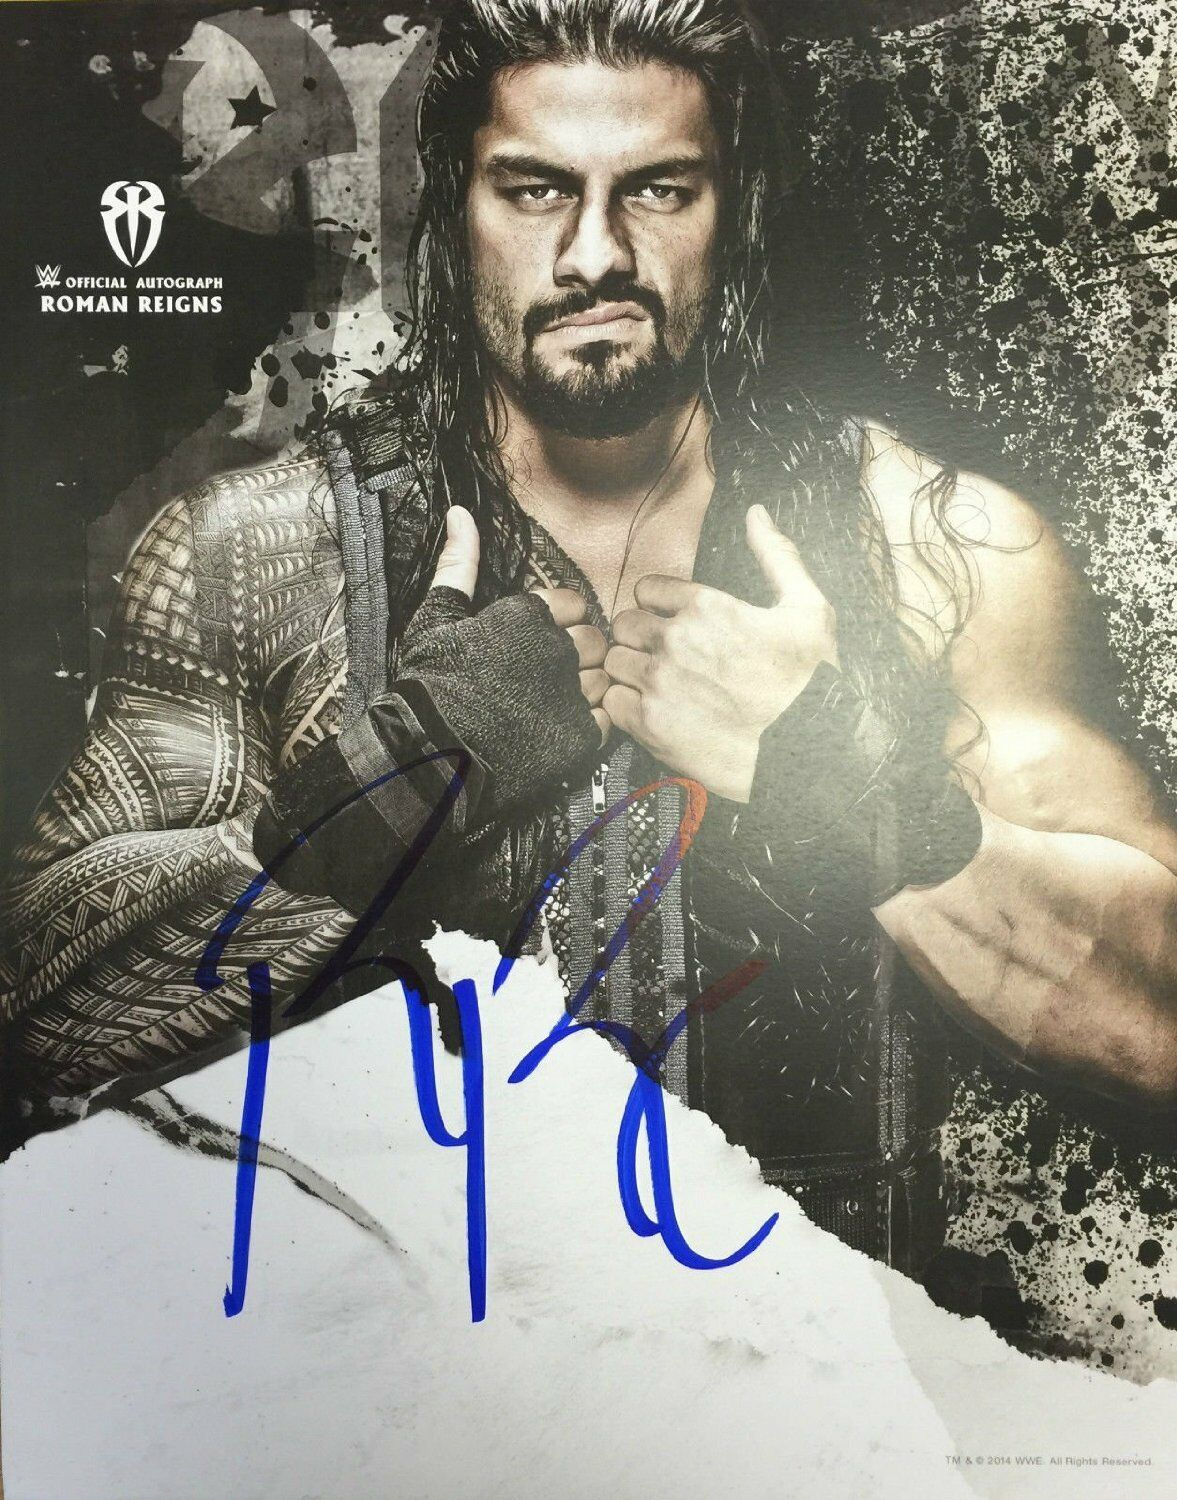 WWE ROMAN REIGNS THE SHIELD AUTOGRAPH HAND SIGNED POSTER PHOTO WRESTLING FIGURE